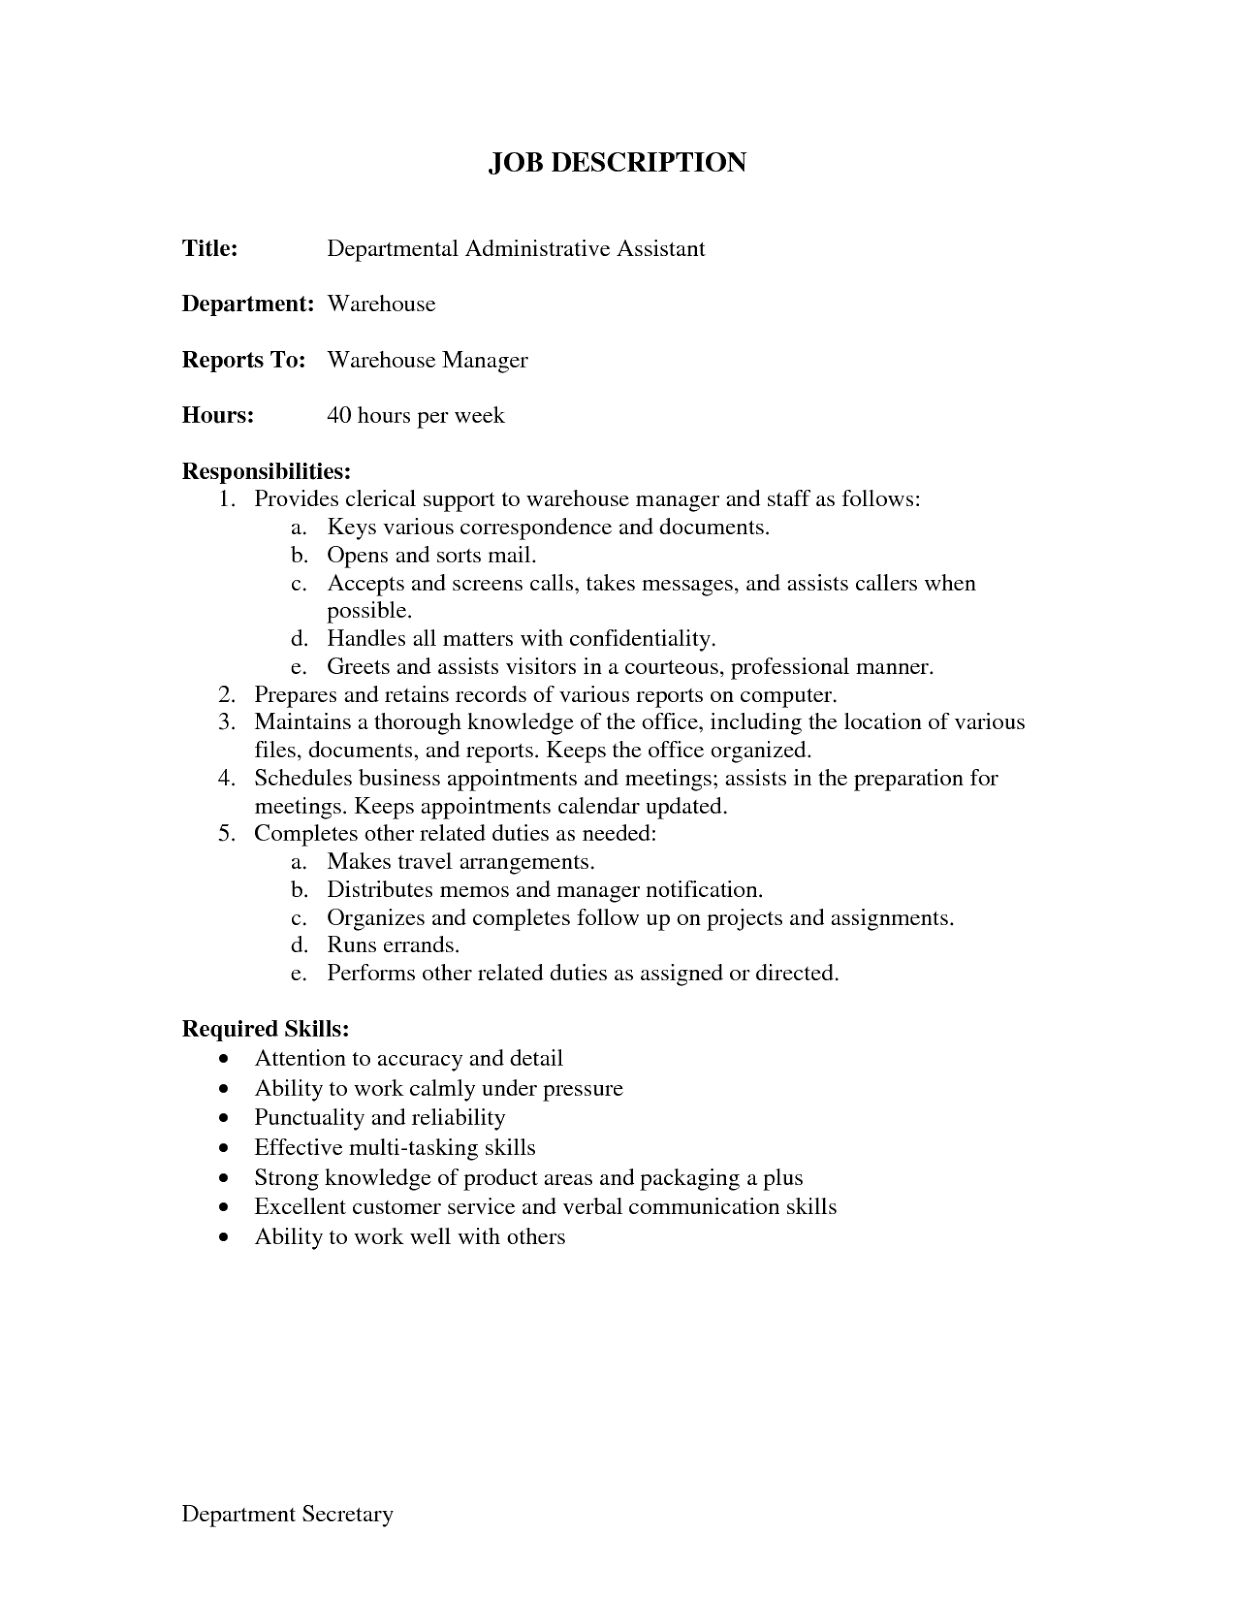 job description for administrative assistant for resume. Resume Example. Resume CV Cover Letter